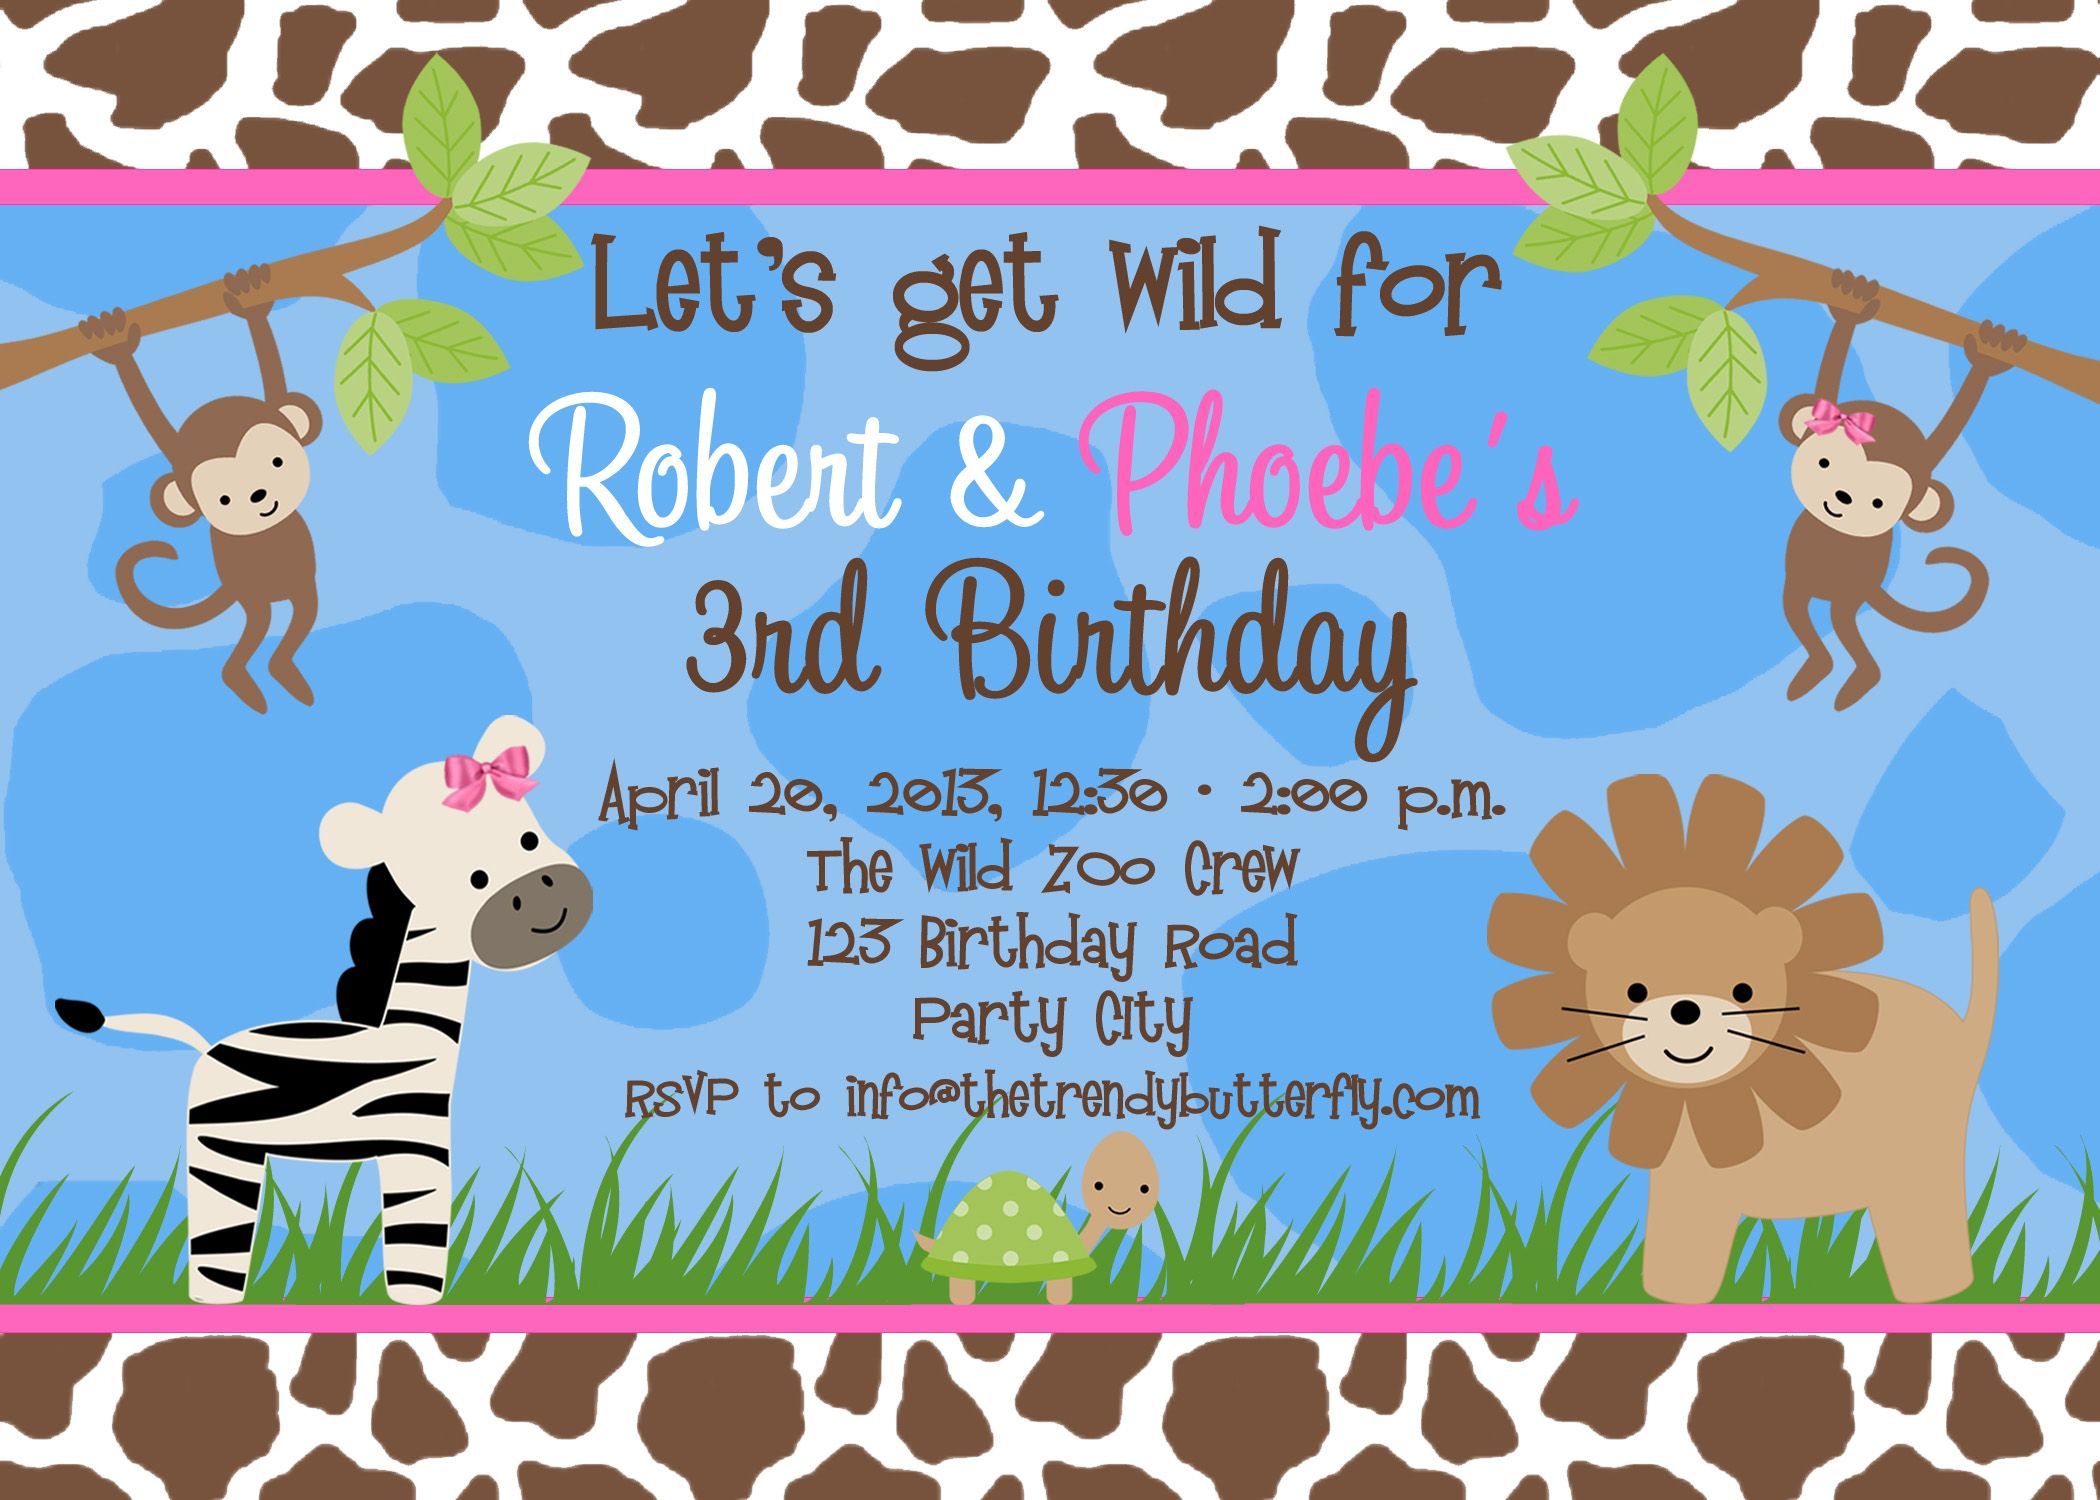 Free Birthday Party Invitation Templates | Drevio Invitations Design  Free Birthday Invitations Templates For Kids